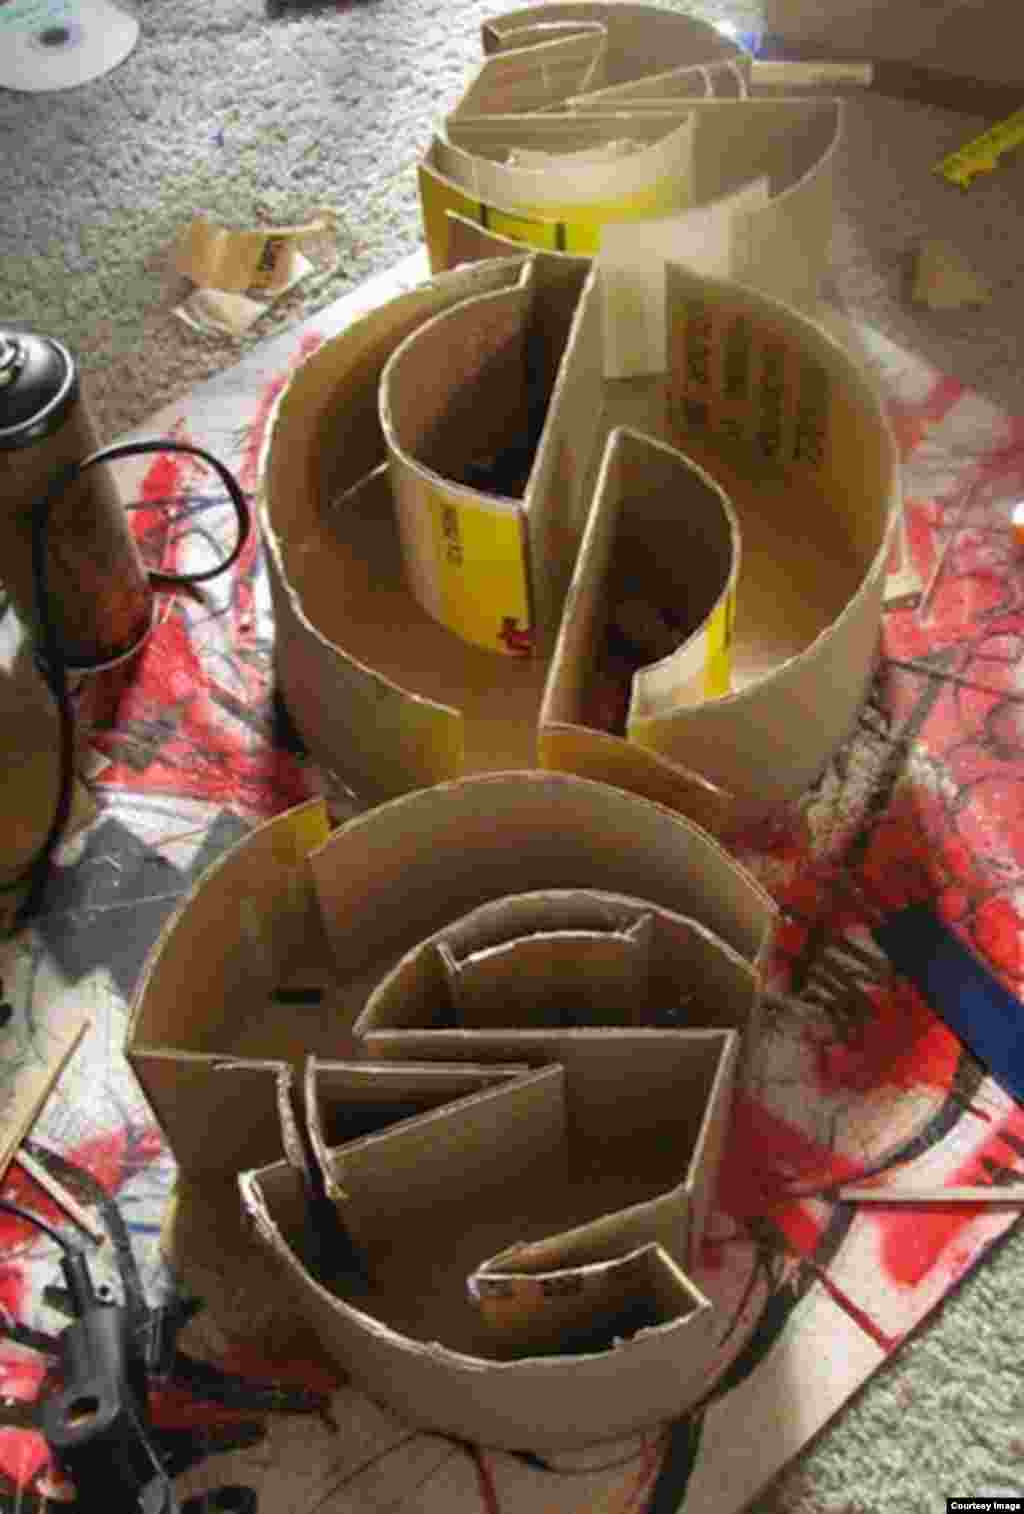 He's now using cardboard to create his art, and is blurring the boundaries between art and architecture (S. Radebe)